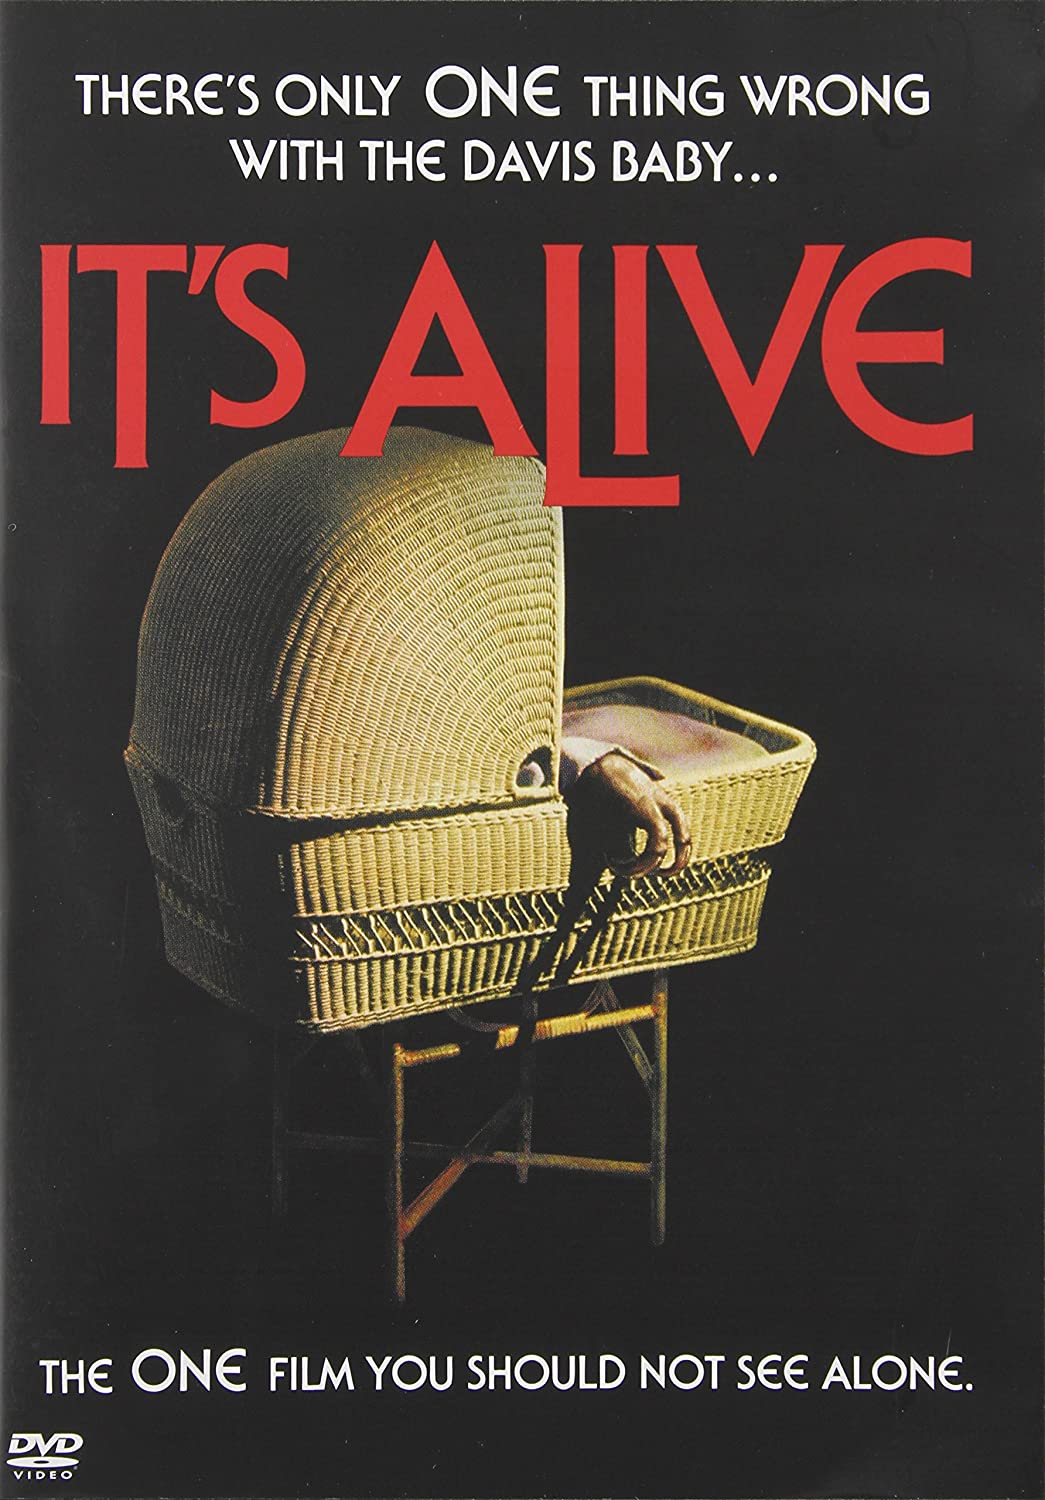 Amazon.com: It's Alive: John P. Ryan, Sharon Farrell, Andrew Duggan, Guy  Stockwell, James Dixon, Michael Ansara, Robert Emhardt, William Wellman  Jr., Shamus Locke, Nancy Burnett, Patrick McAllister, Daniel Holzman,  Fenton Hamilton, Larry